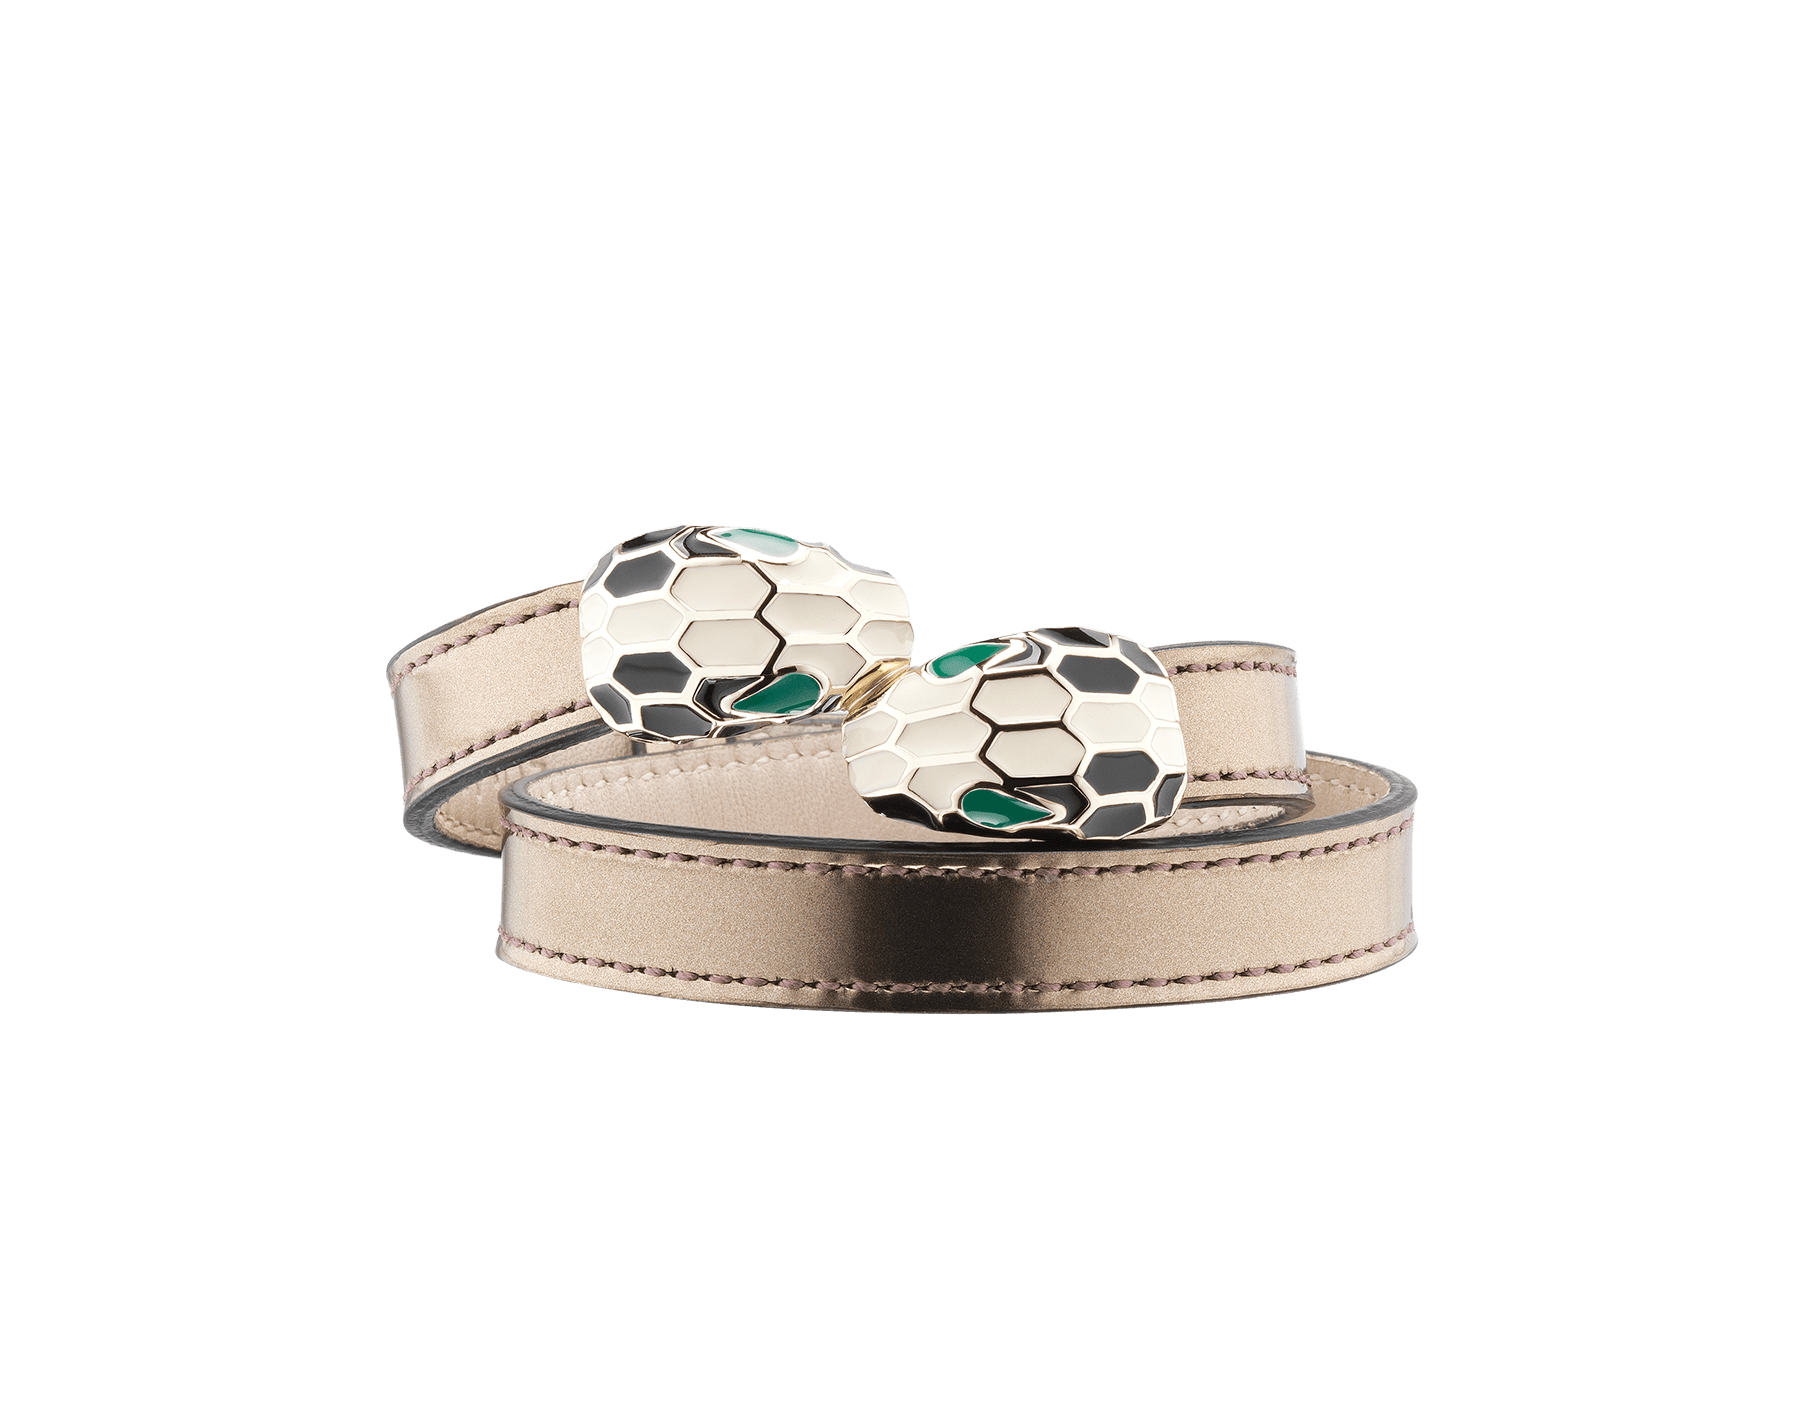 Multi-coiled bracelet in antique bronze brushed metallic calf leather. Brass light gold plated iconic contraire Serpenti head closure in black and white enamel with malachite enamel eyes. 39918 image 1